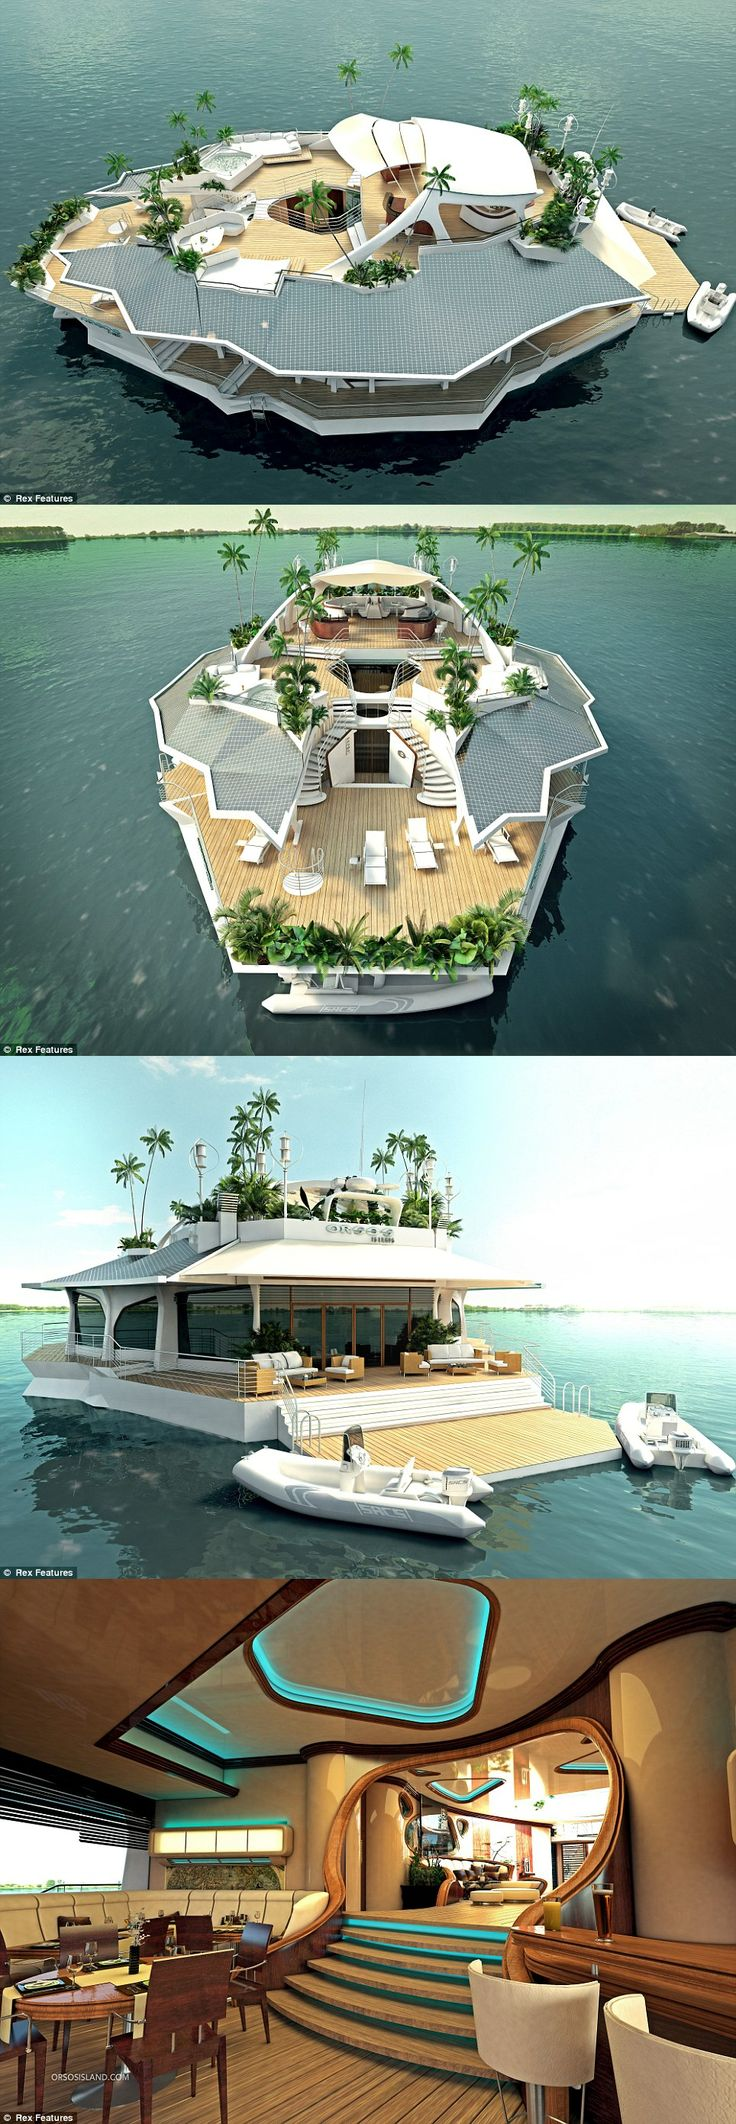 Orsos Island | Floating, Luxury Yacht. Amazing what people can dream up and then build!